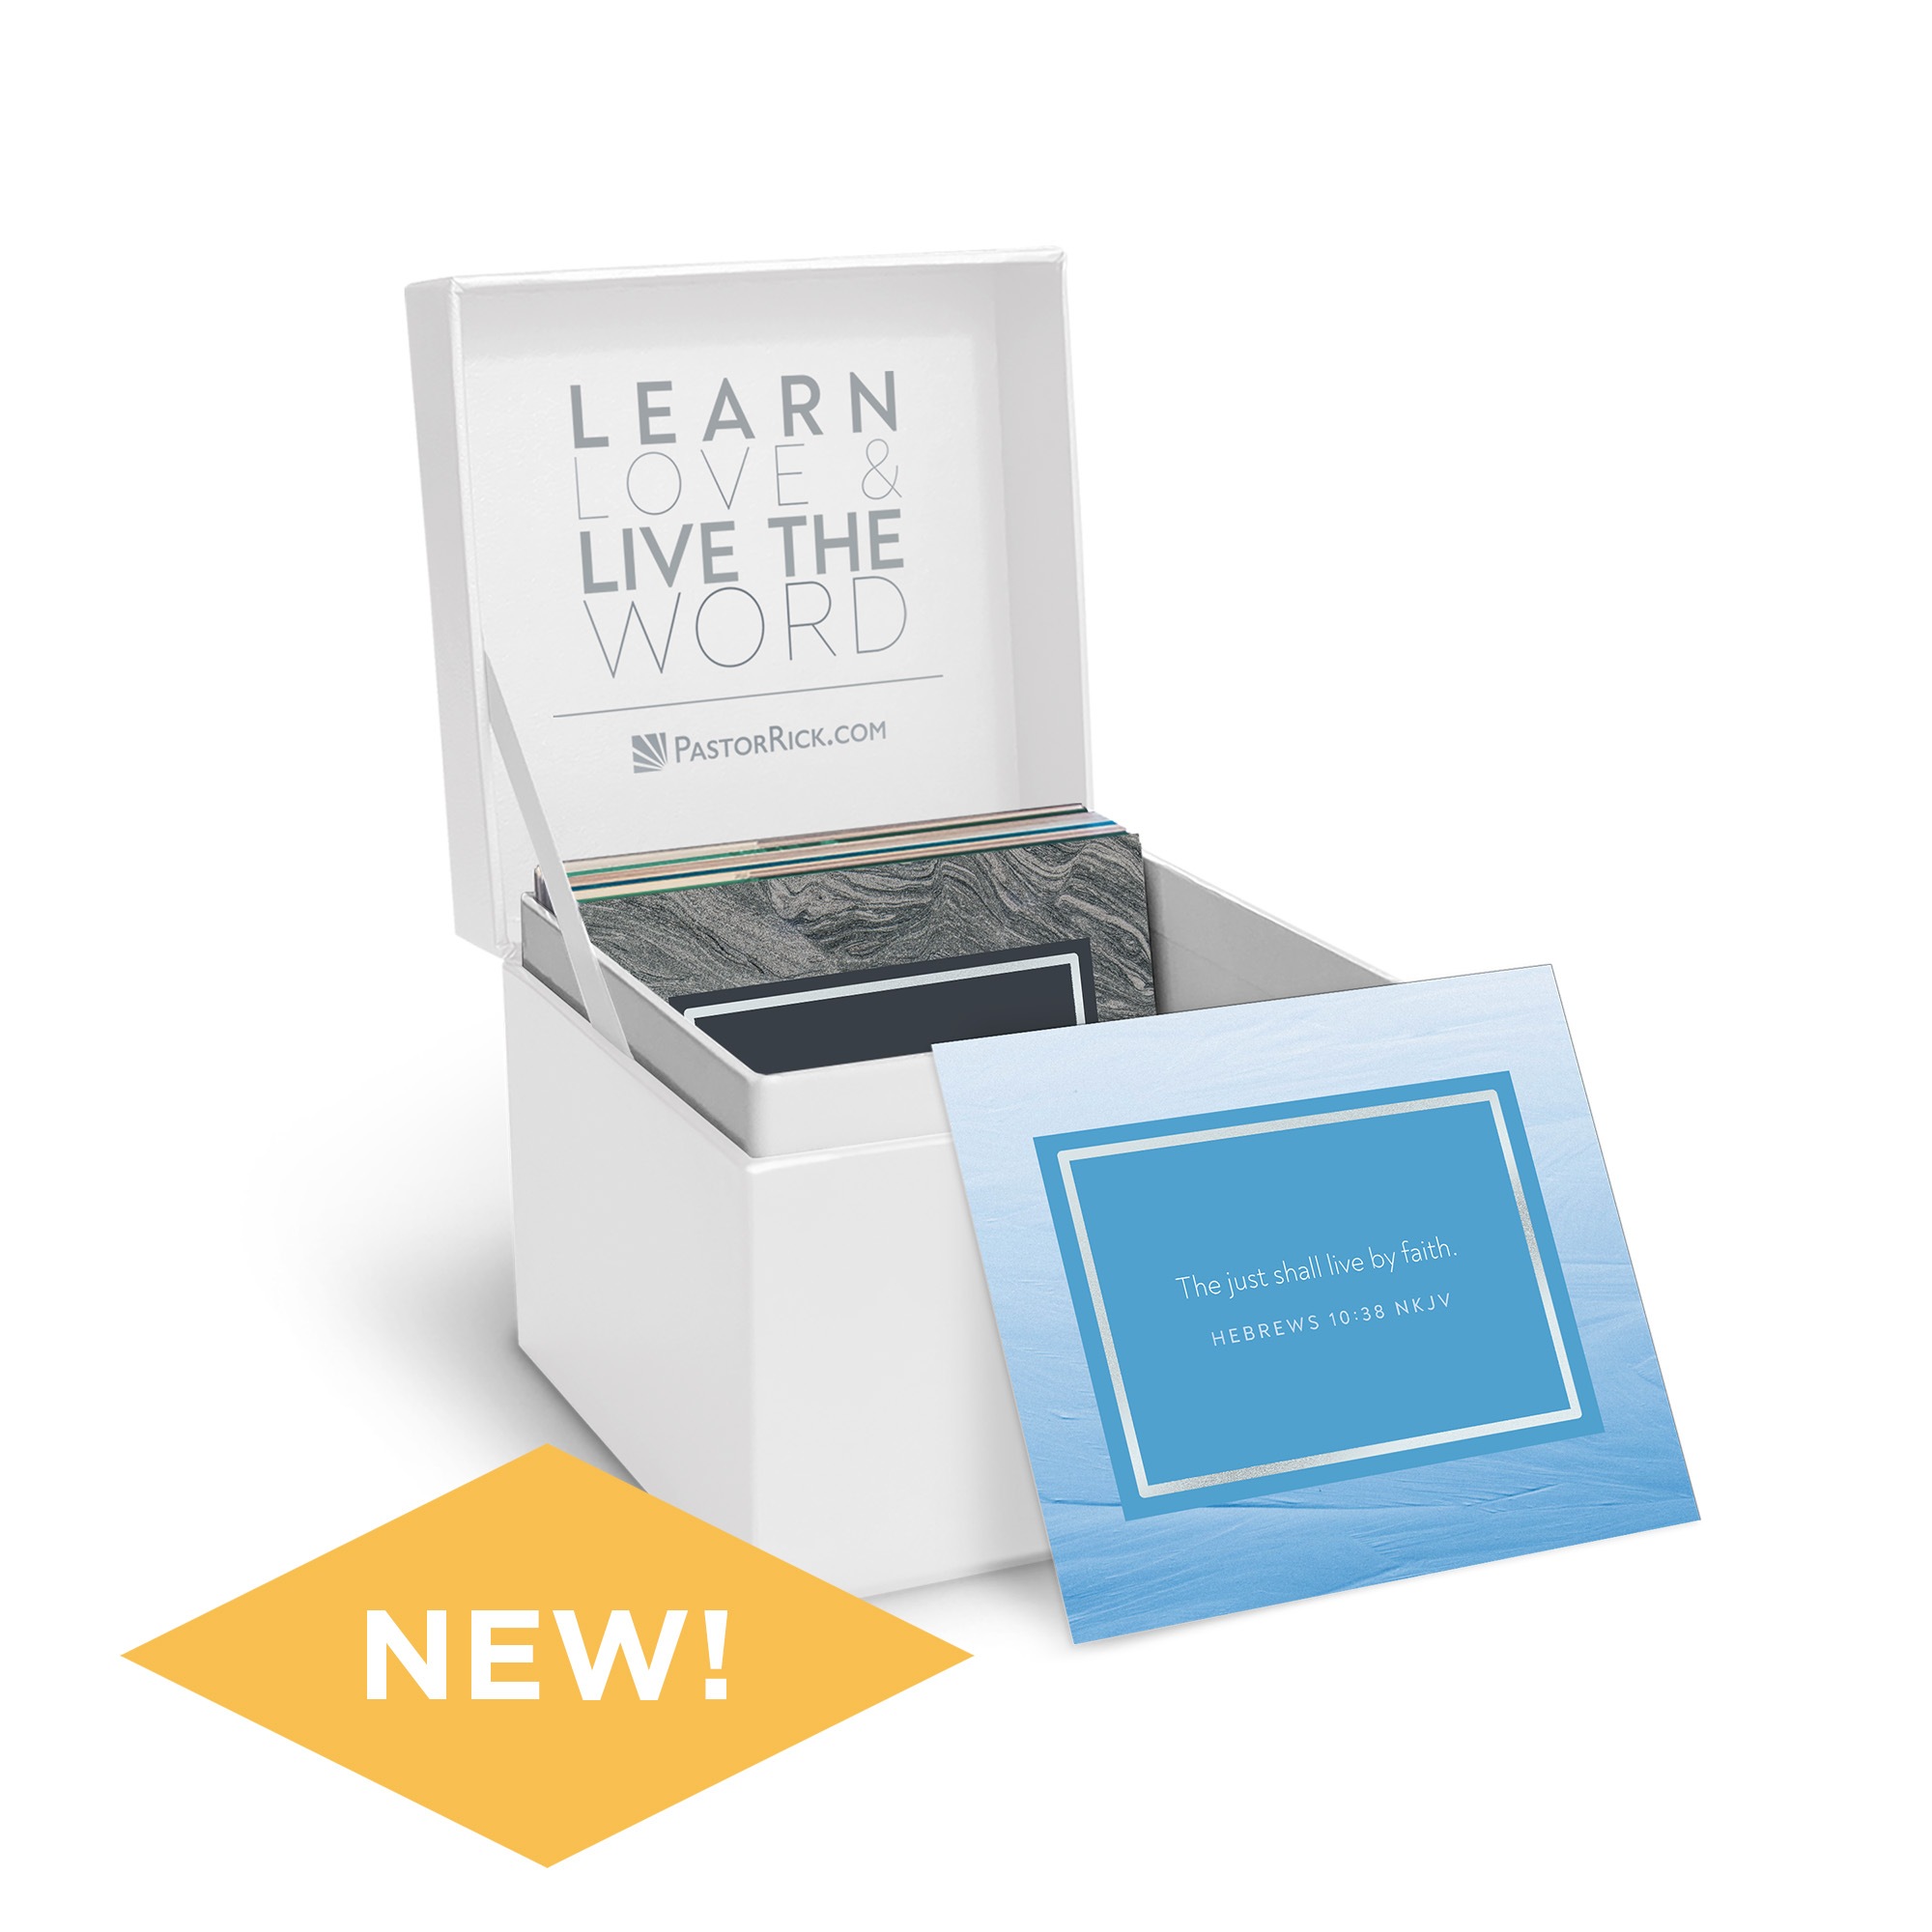 lifes healing choices scripture box daily hope july 2021 offer